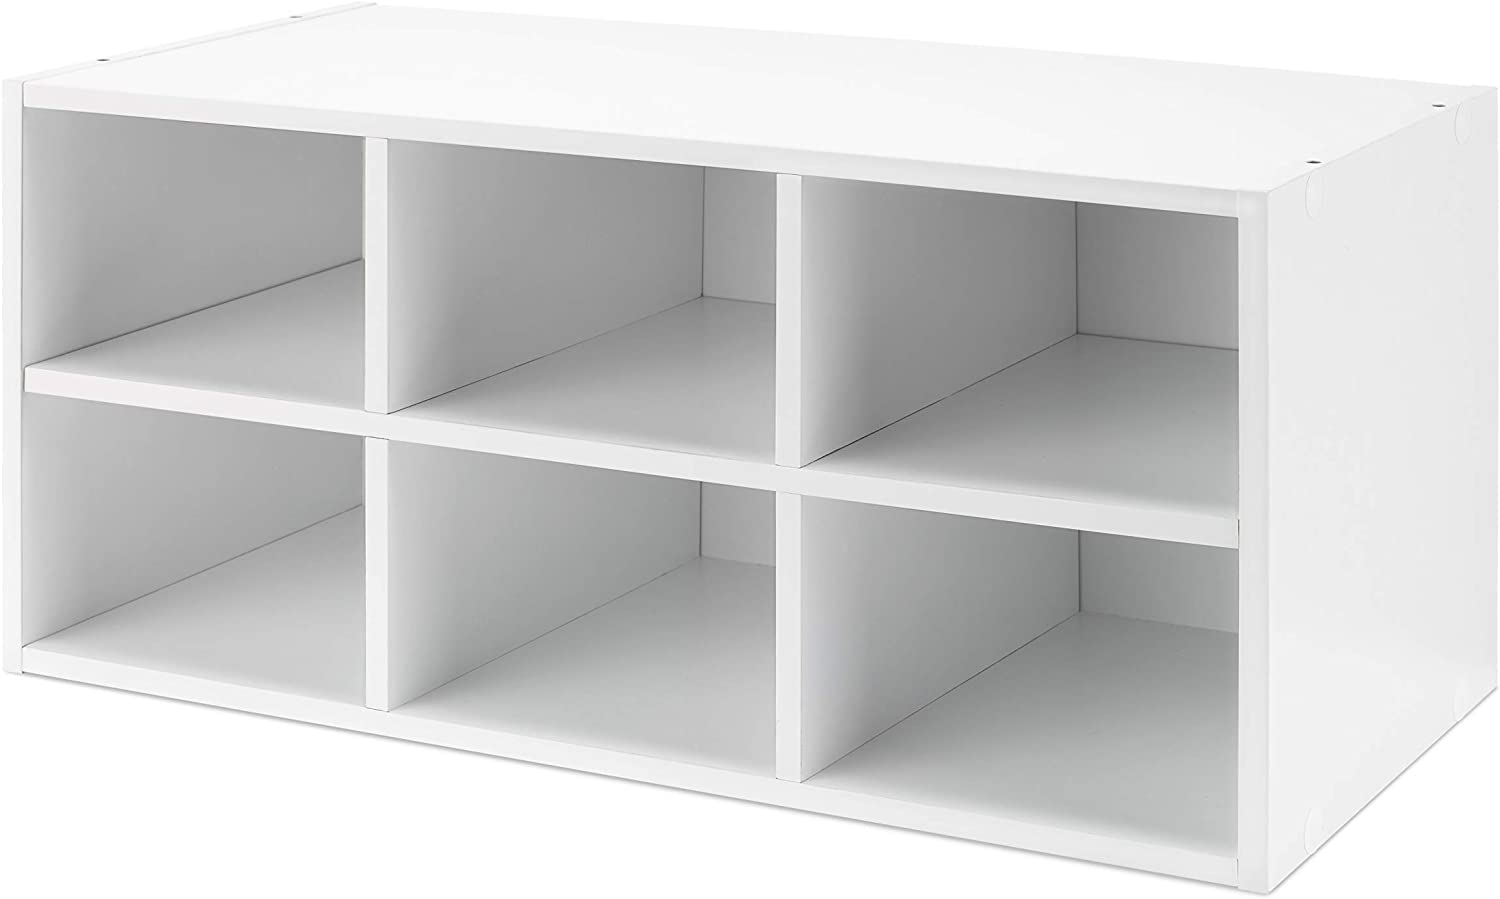 Whitmor Shipping included List price 24-inch Wood 6-Section White Stackable Organizer Cube